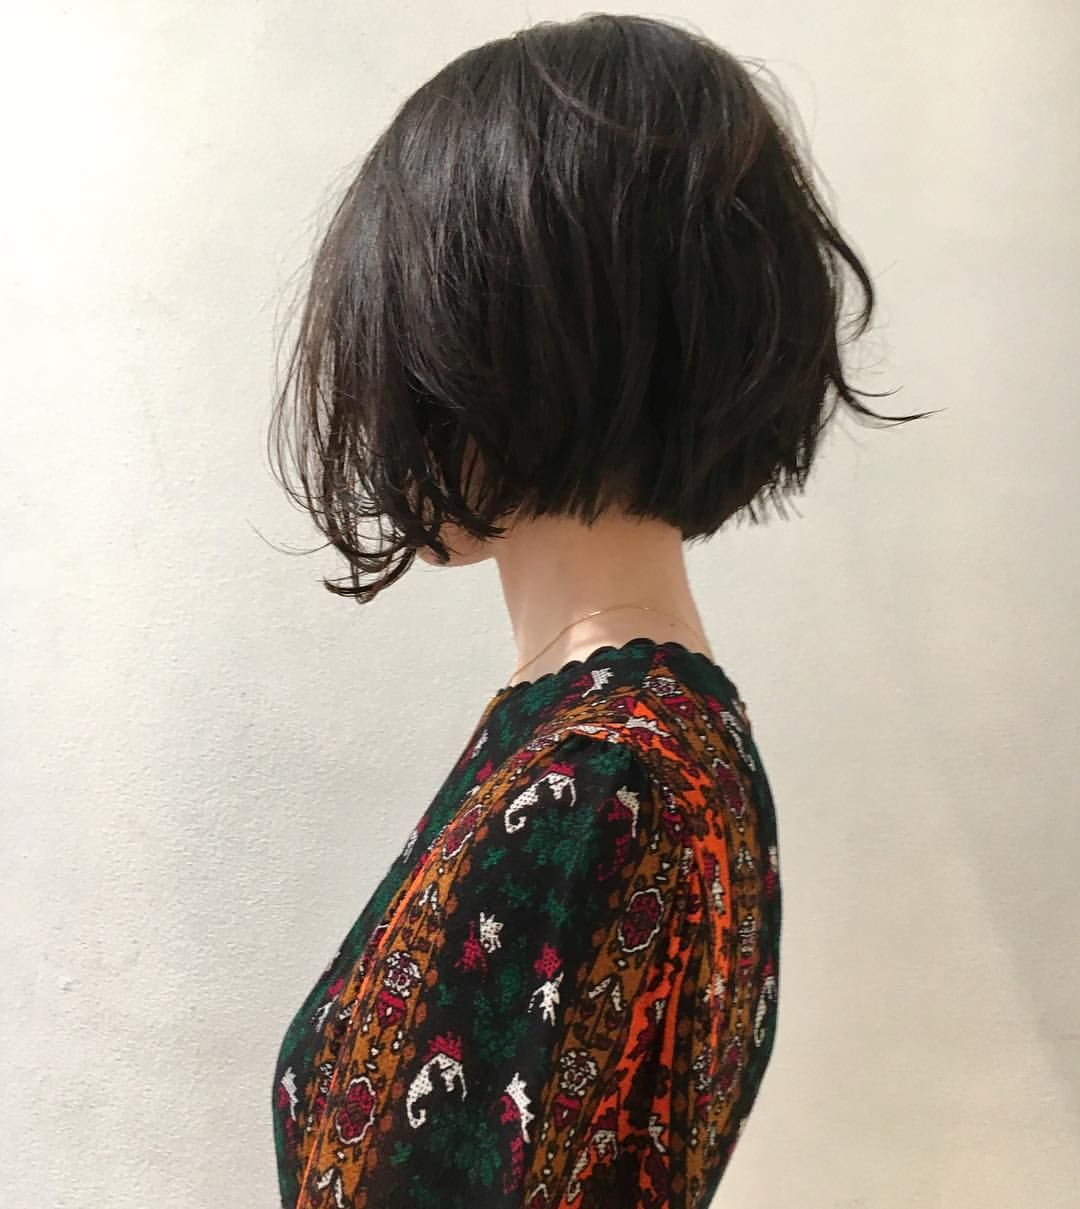 hair style perm bob hair ideas pelo corto cabello y 5693